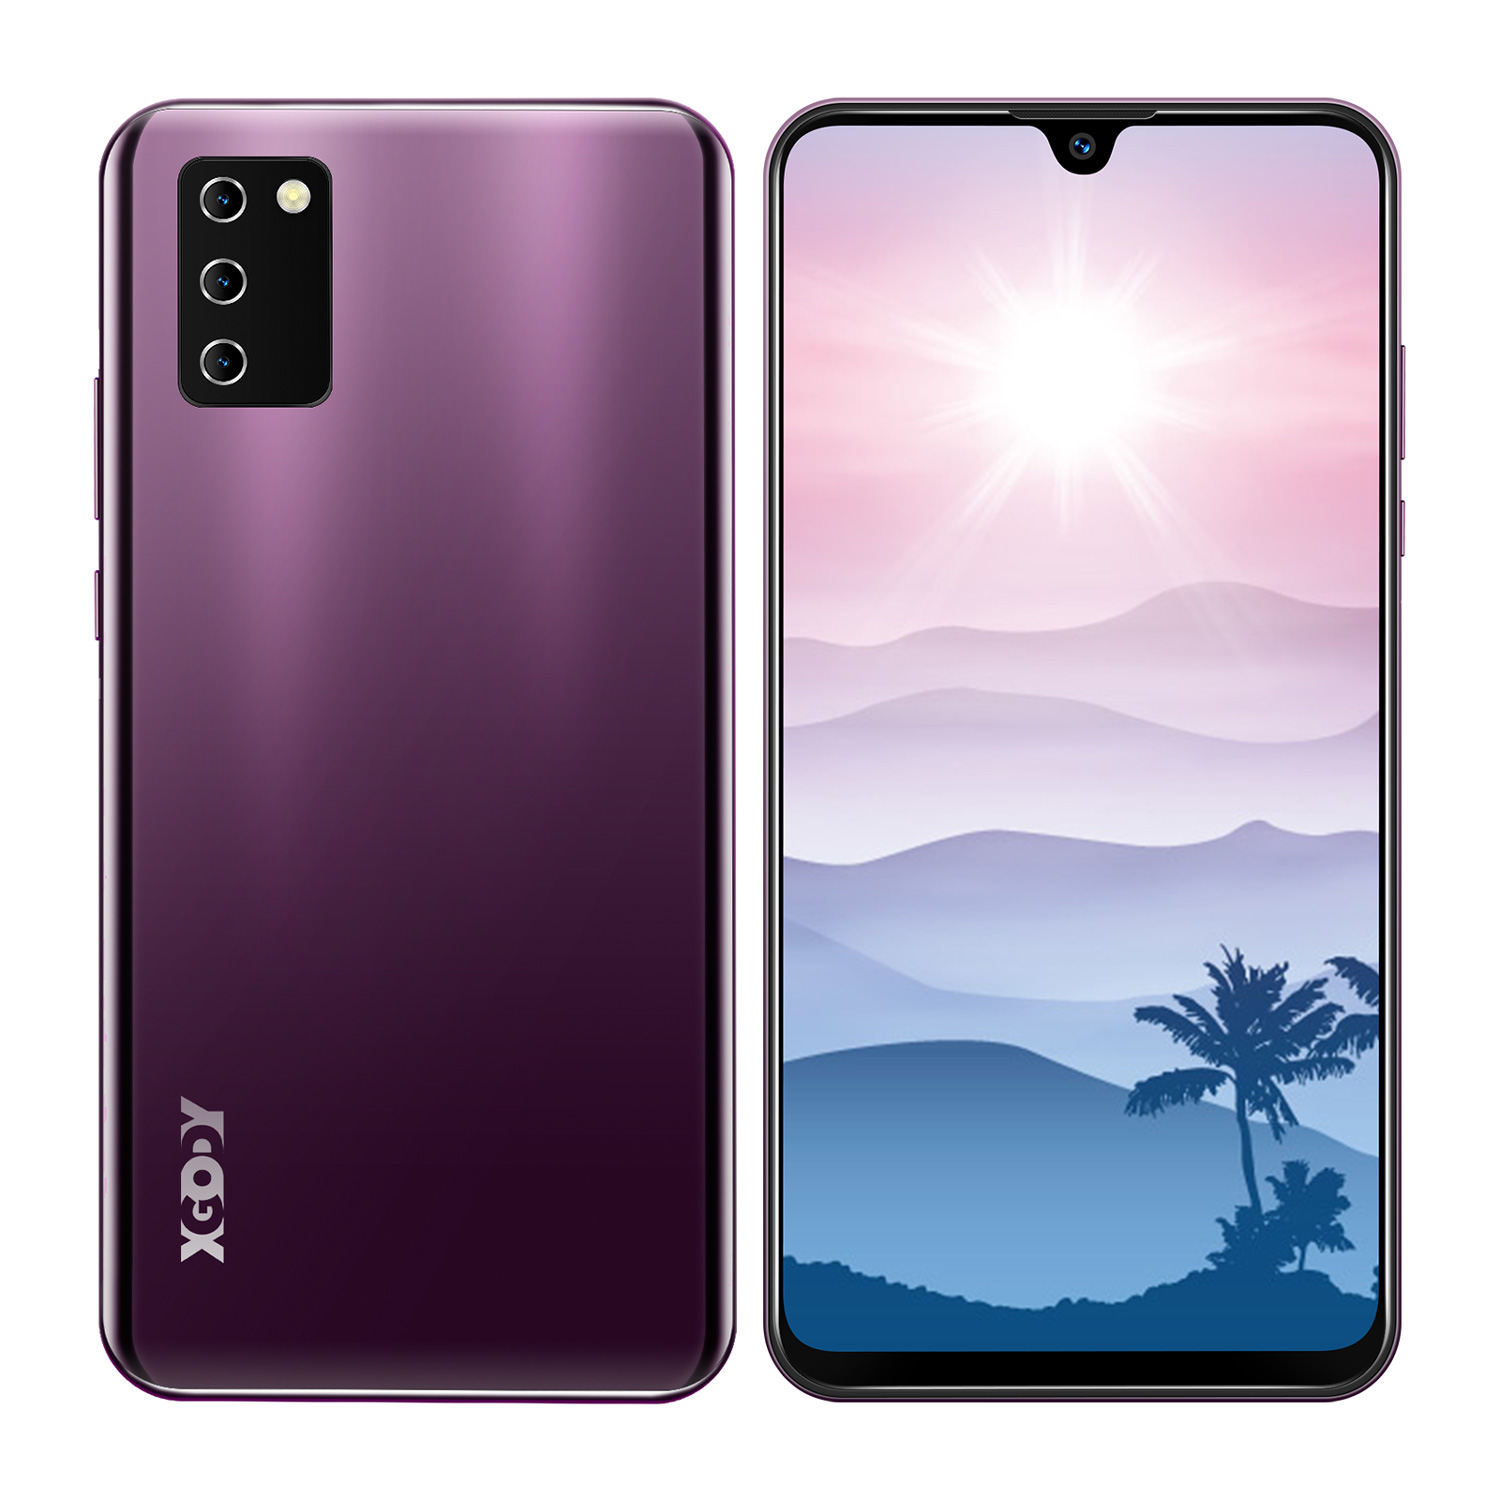 XGODY NOTE 10 Android 9.0 4G mobile phones 2GB RAM 16GB ROM Face ID 5MP Camera Dual SIM GPS WIFI 7.2″ 19:9 smartphone Quad Core